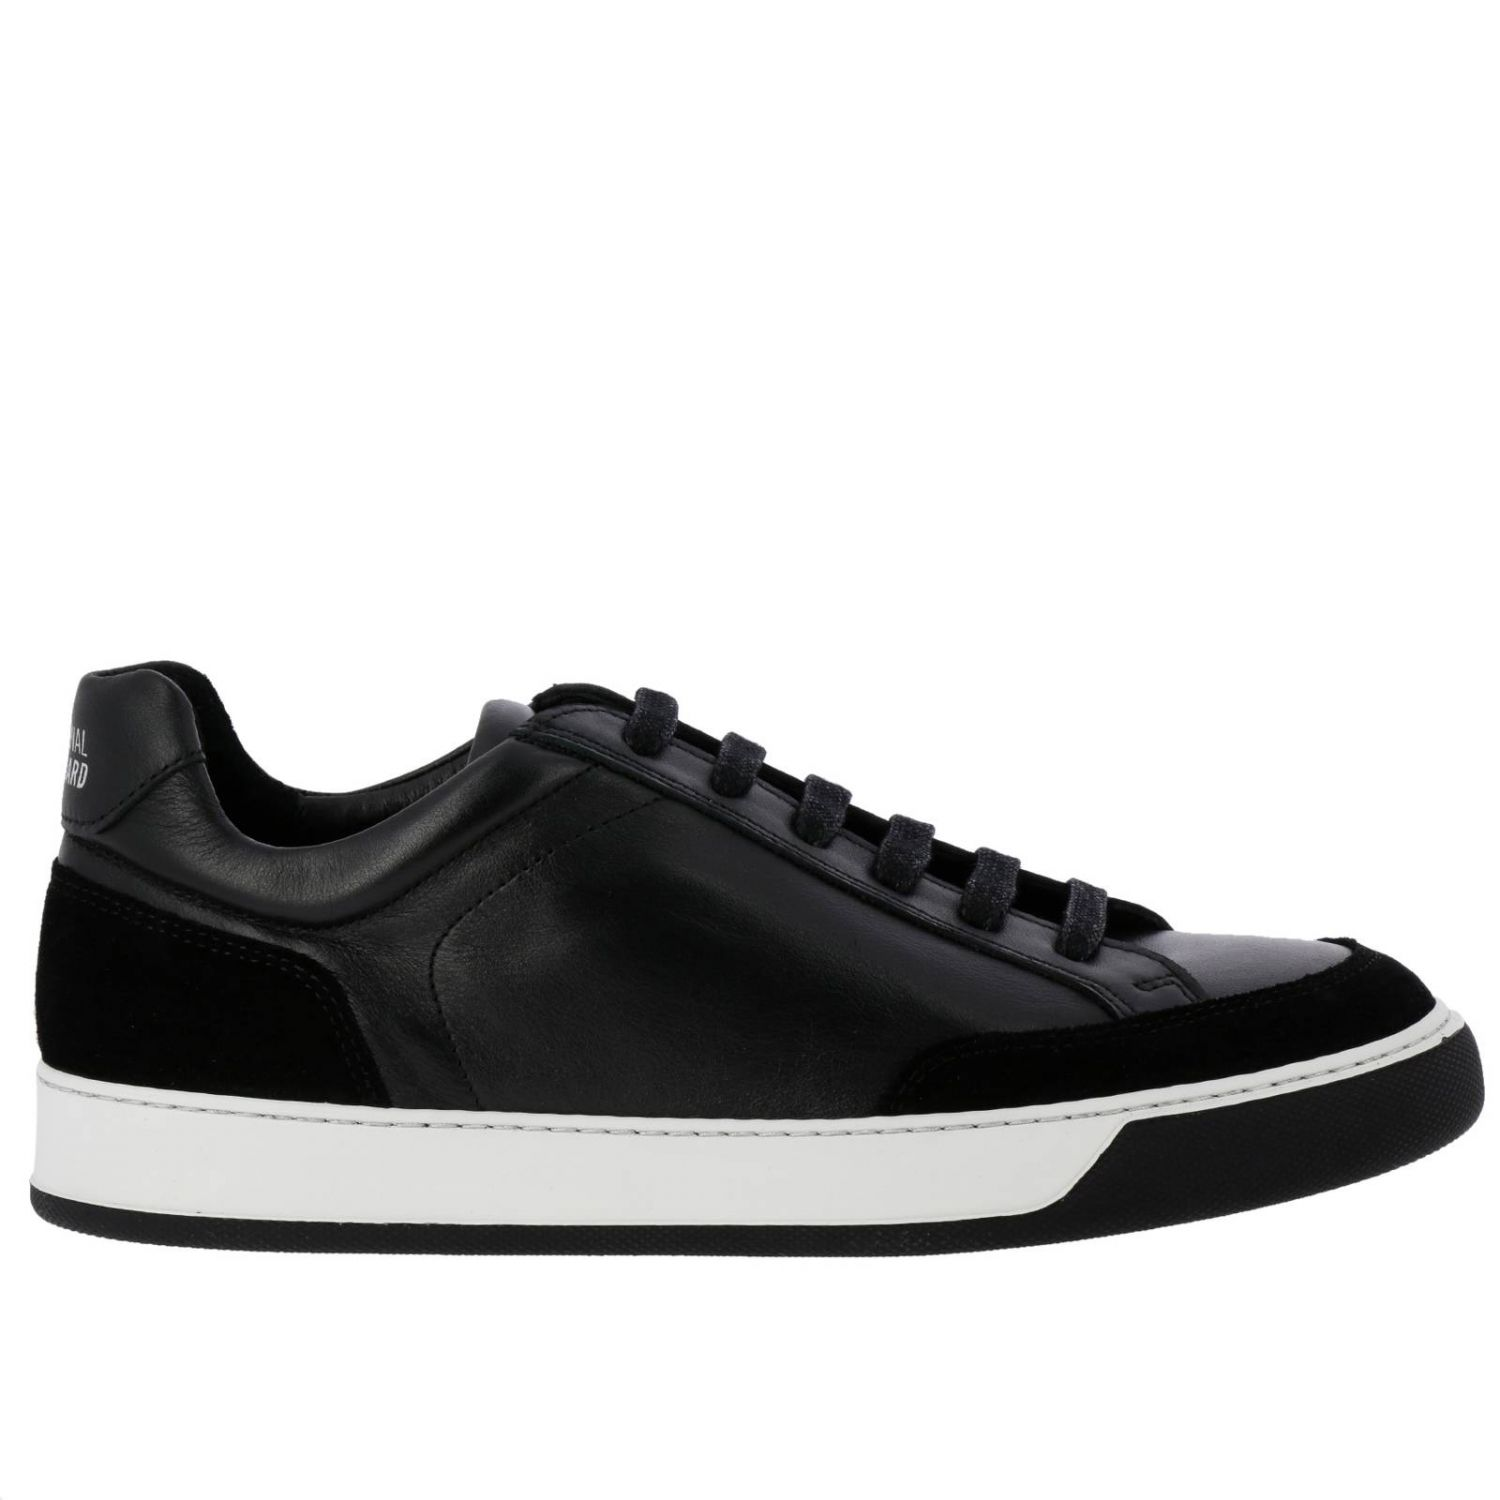 Trainers men National Standard black 1